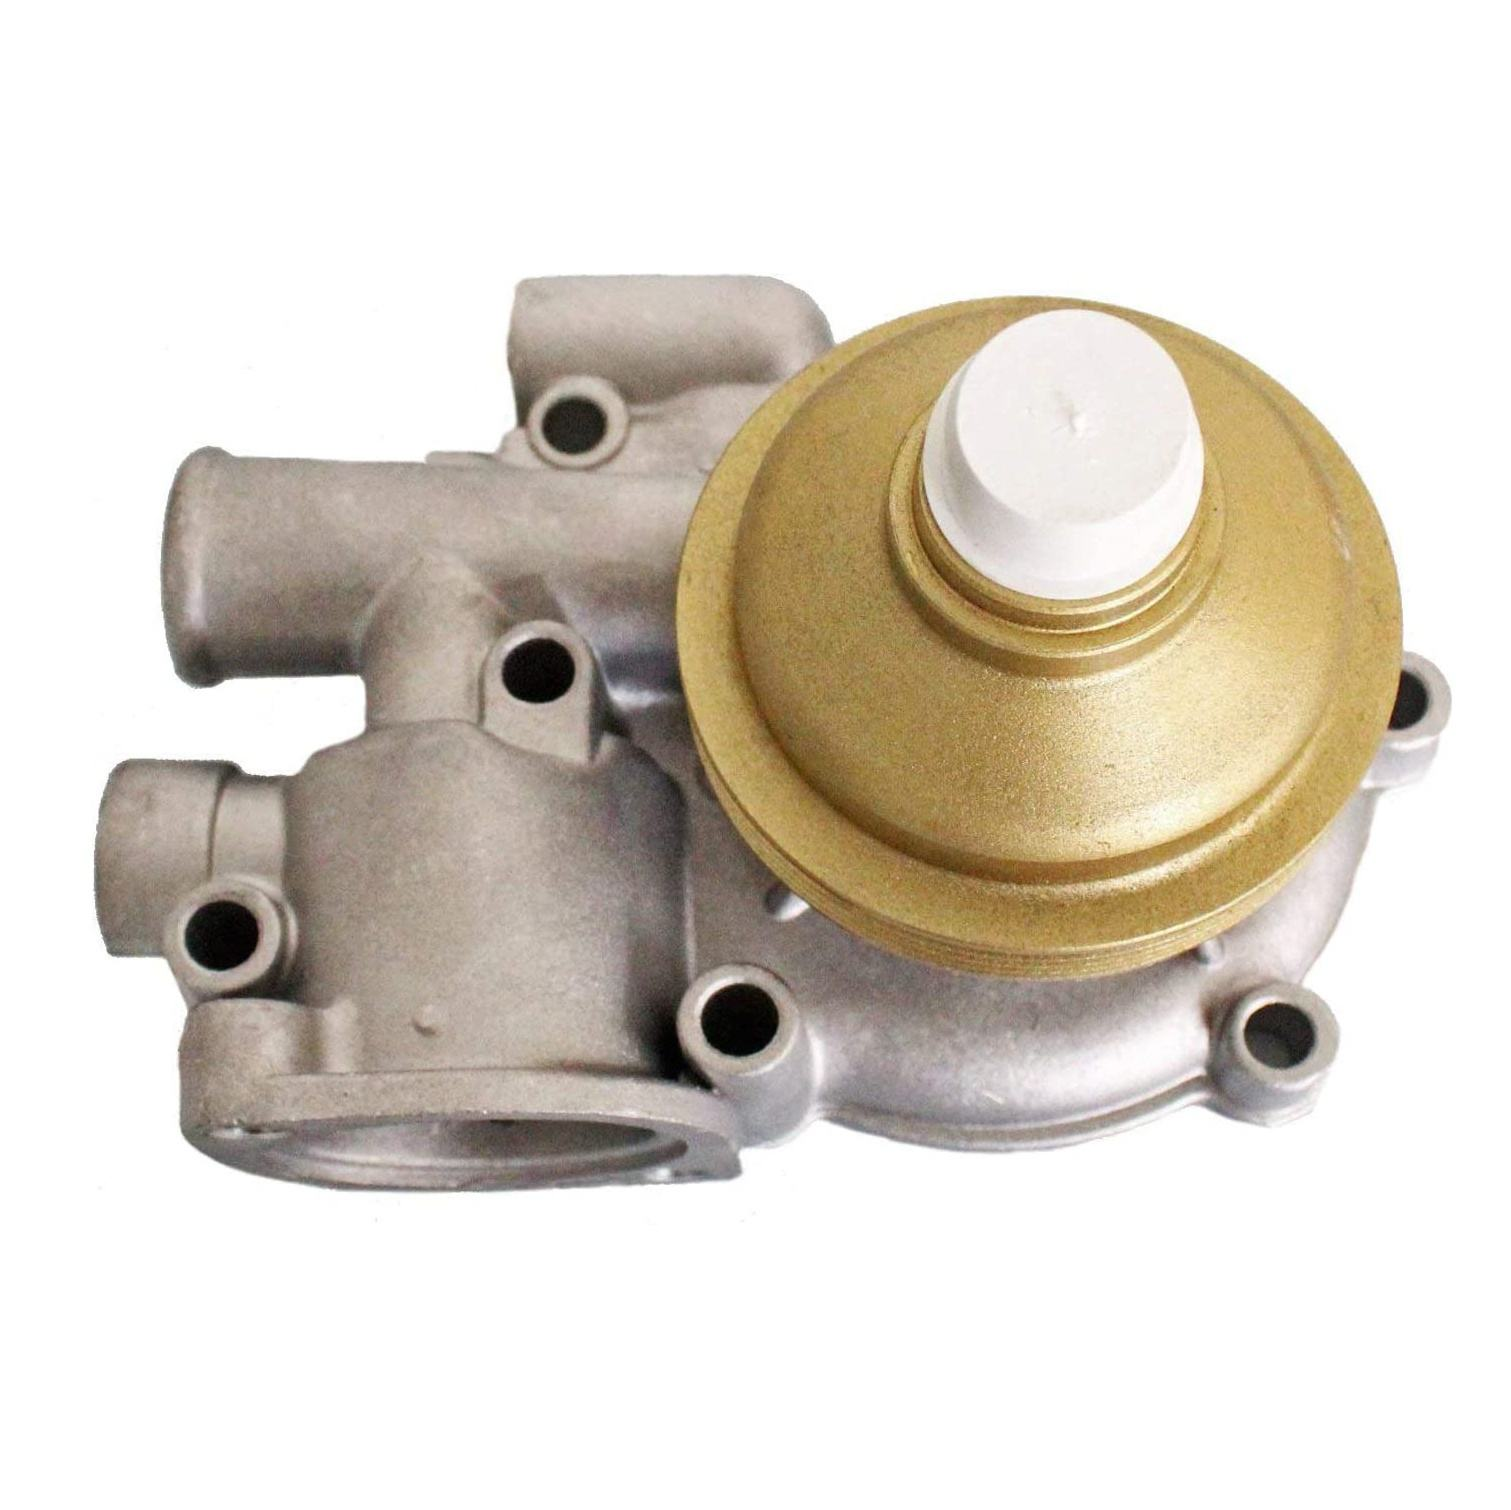 Replacement Lister Petter Water Pump 750-40621 750-40624 750-42730 751-41021 751-41022 for Alpha LPW LPWS LPWT machinery Engine